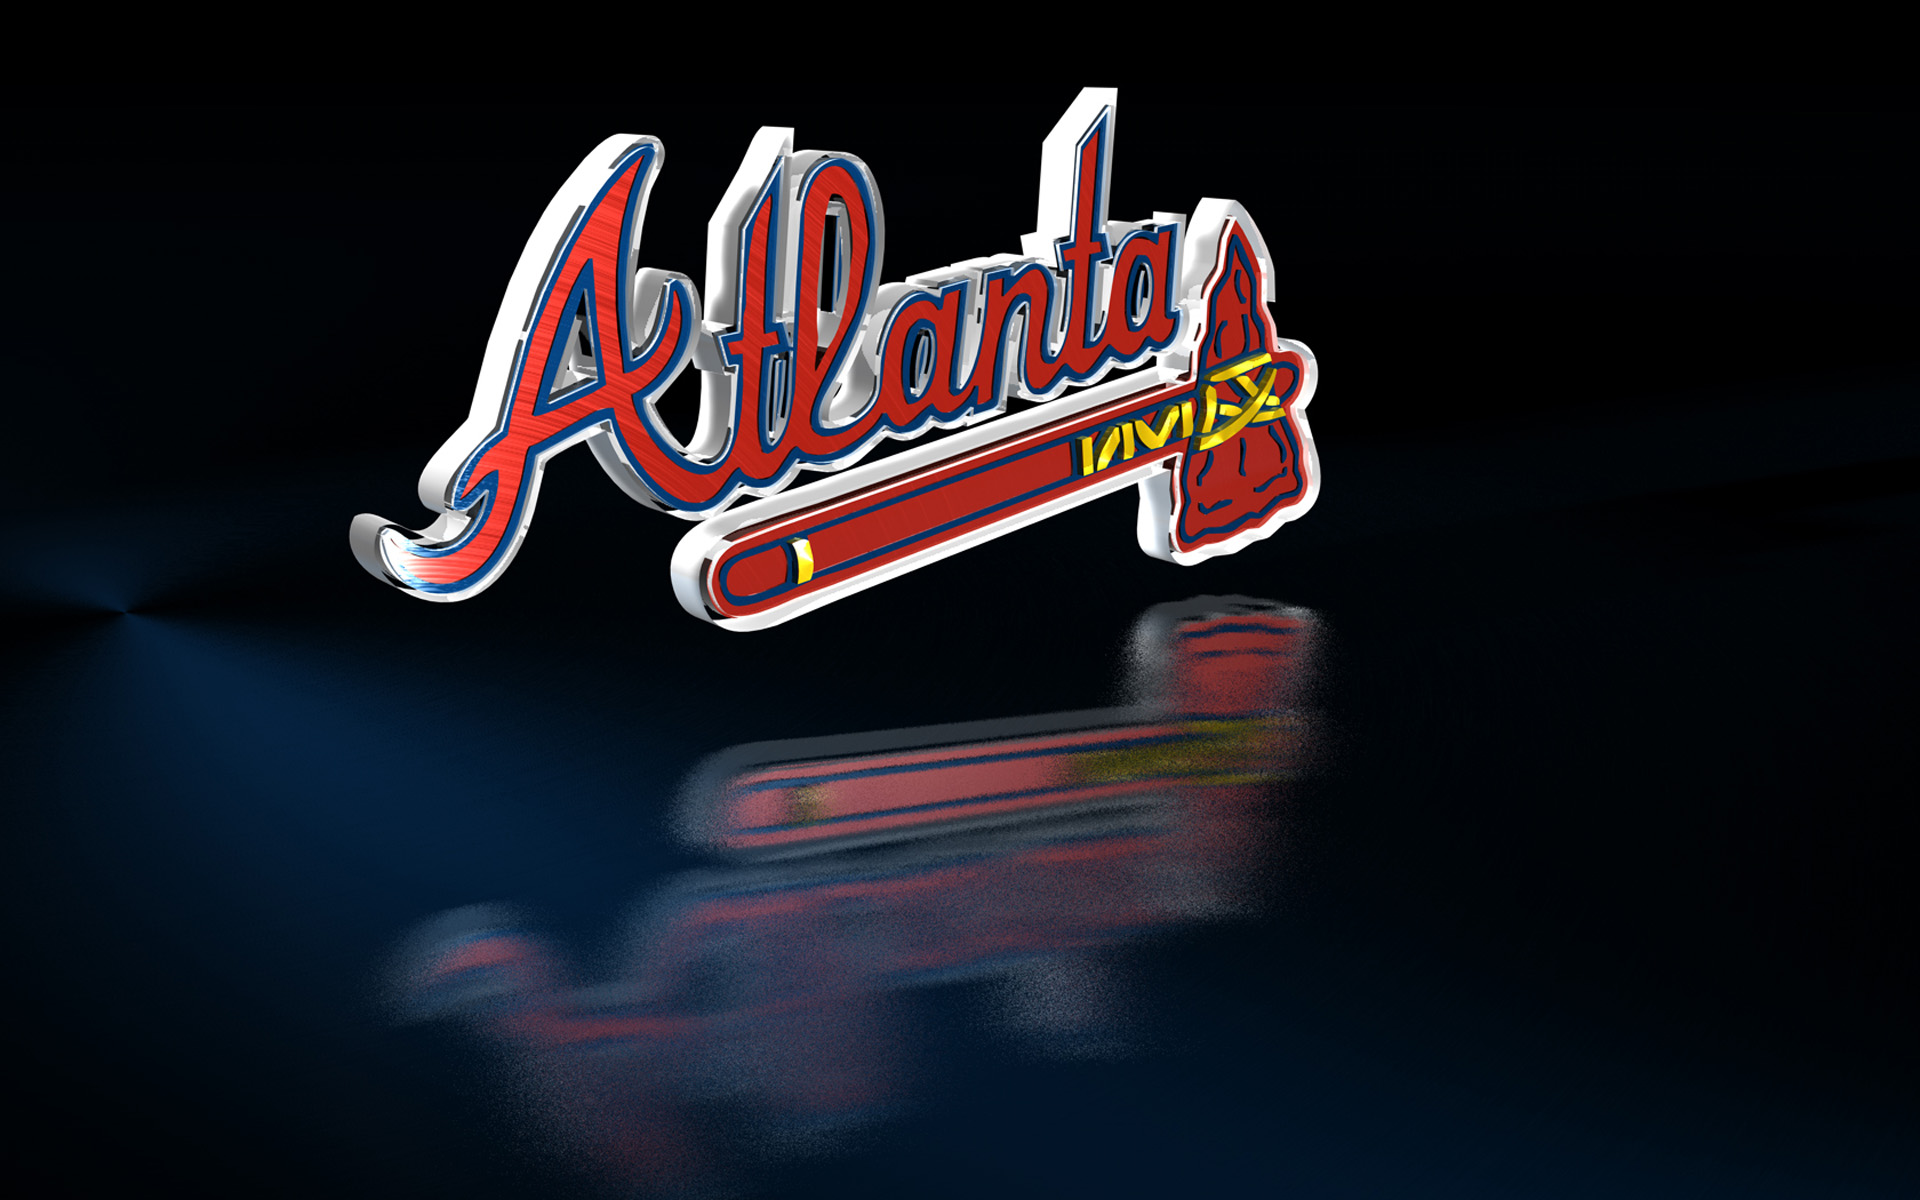 ATLANTA BRAVES baseball mlb fh wallpaper | 1920x1200 | 158359 | WallpaperUP